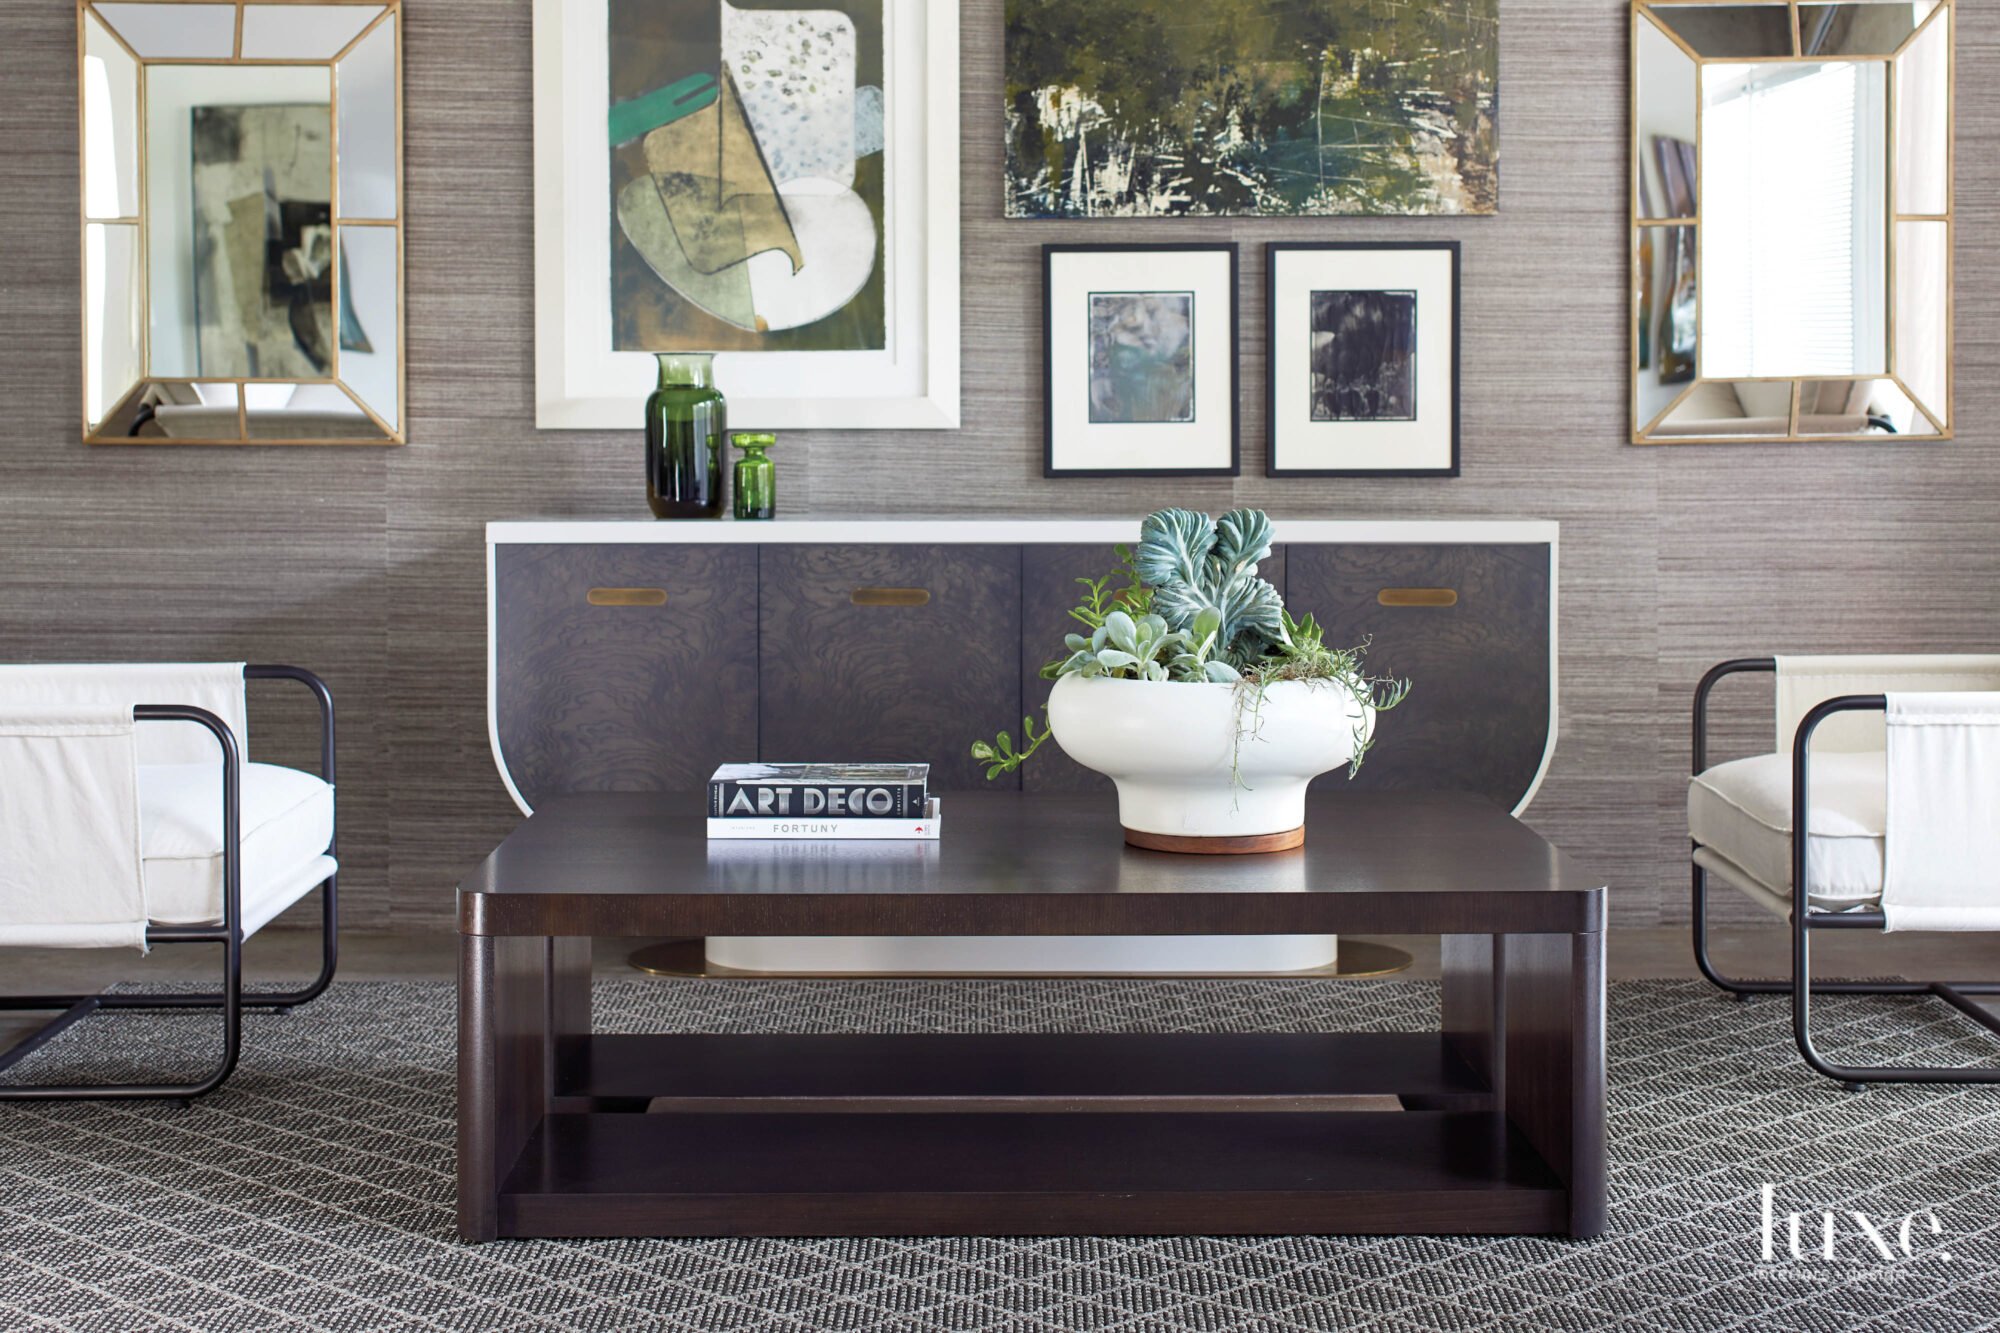 Behind The Arizona Furniture Collection Inspired By The Sonoran Desert And Art Deco Period {Behind The Arizona Furniture Collection Inspired By The Sonoran Desert And Art Deco Period} – English